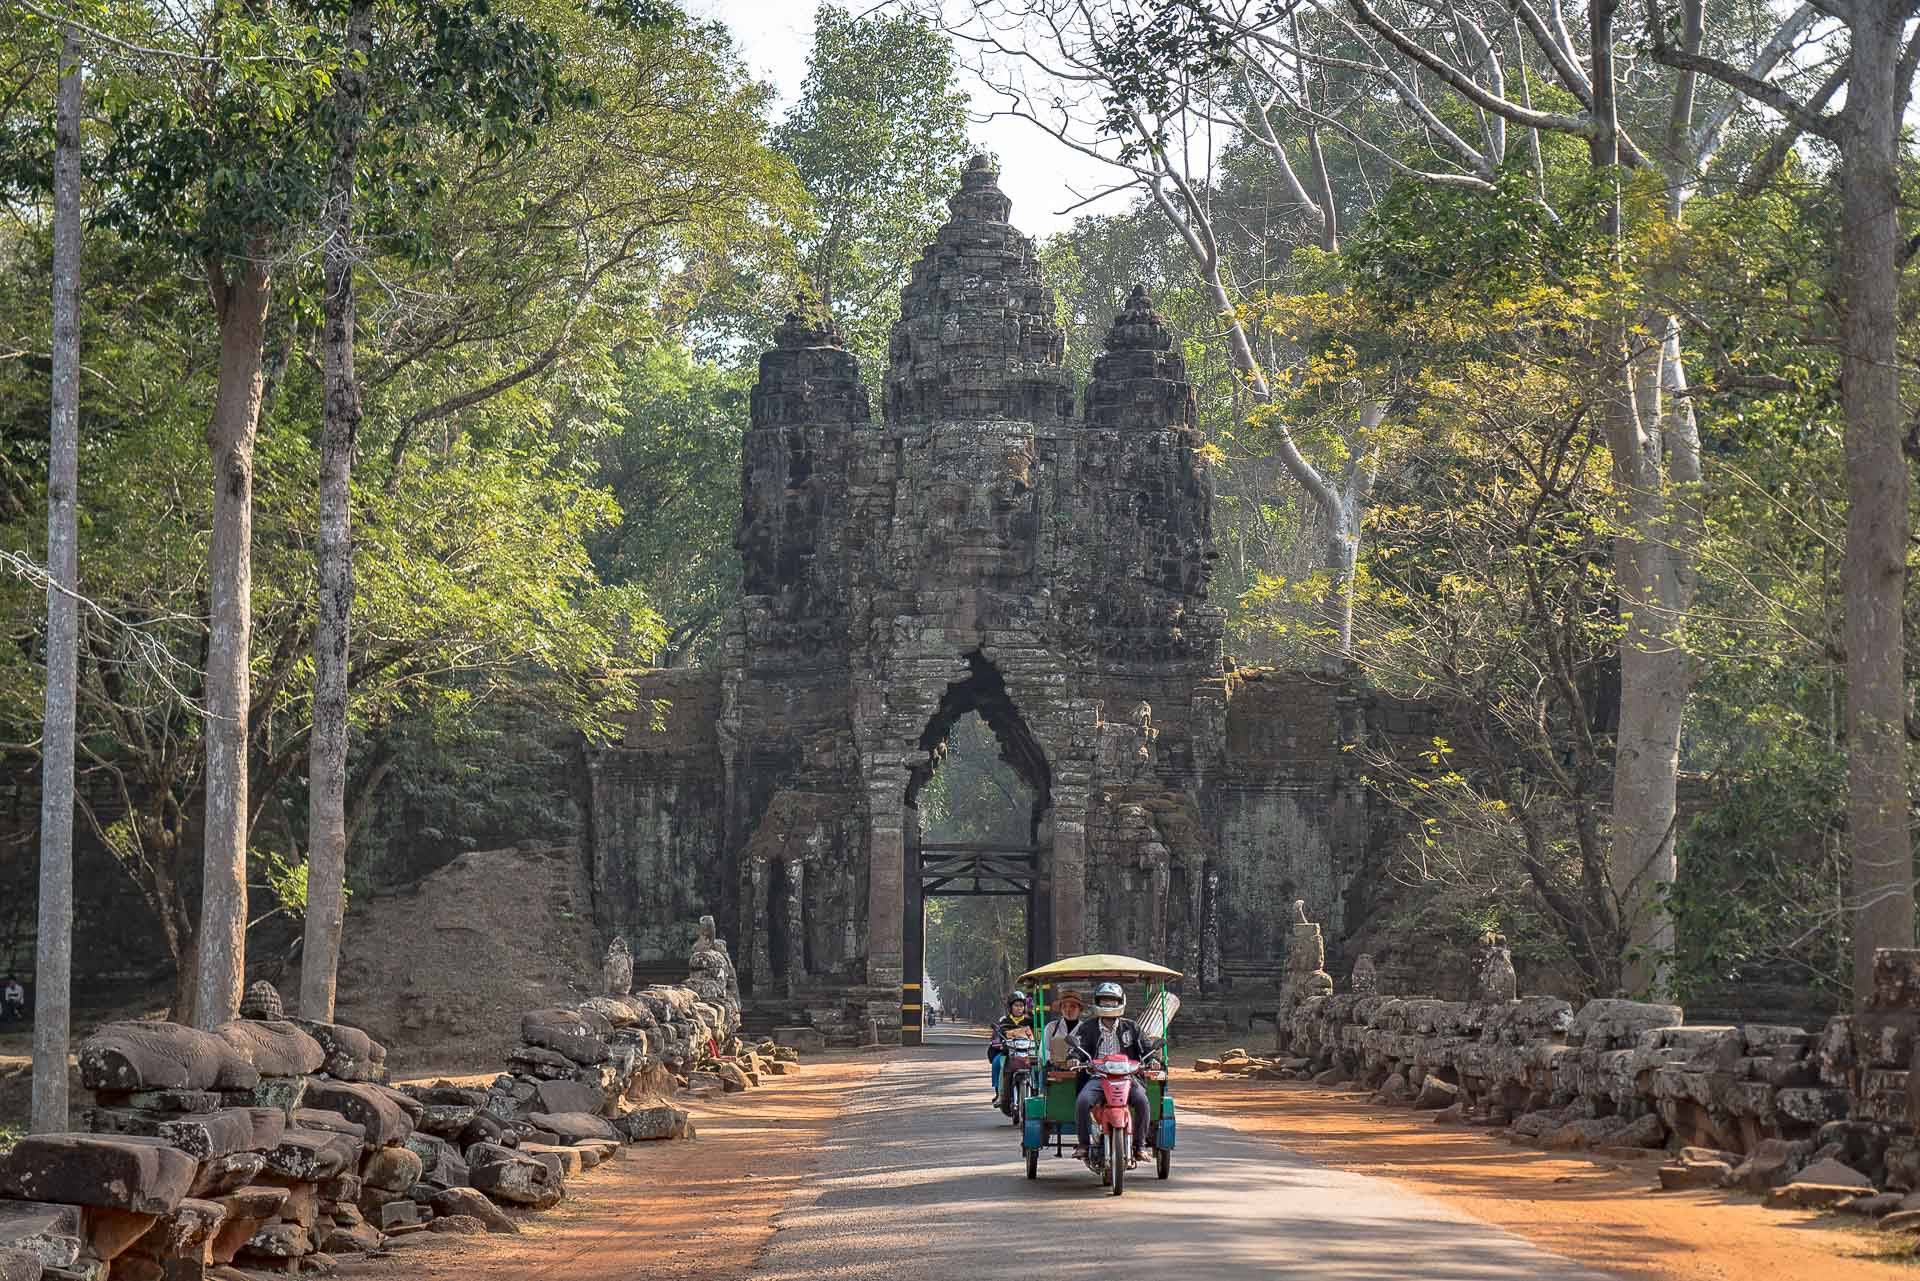 Lesvoyageuses-guide-voyage-Siem-reap-angkor-temples-Cambodge-48